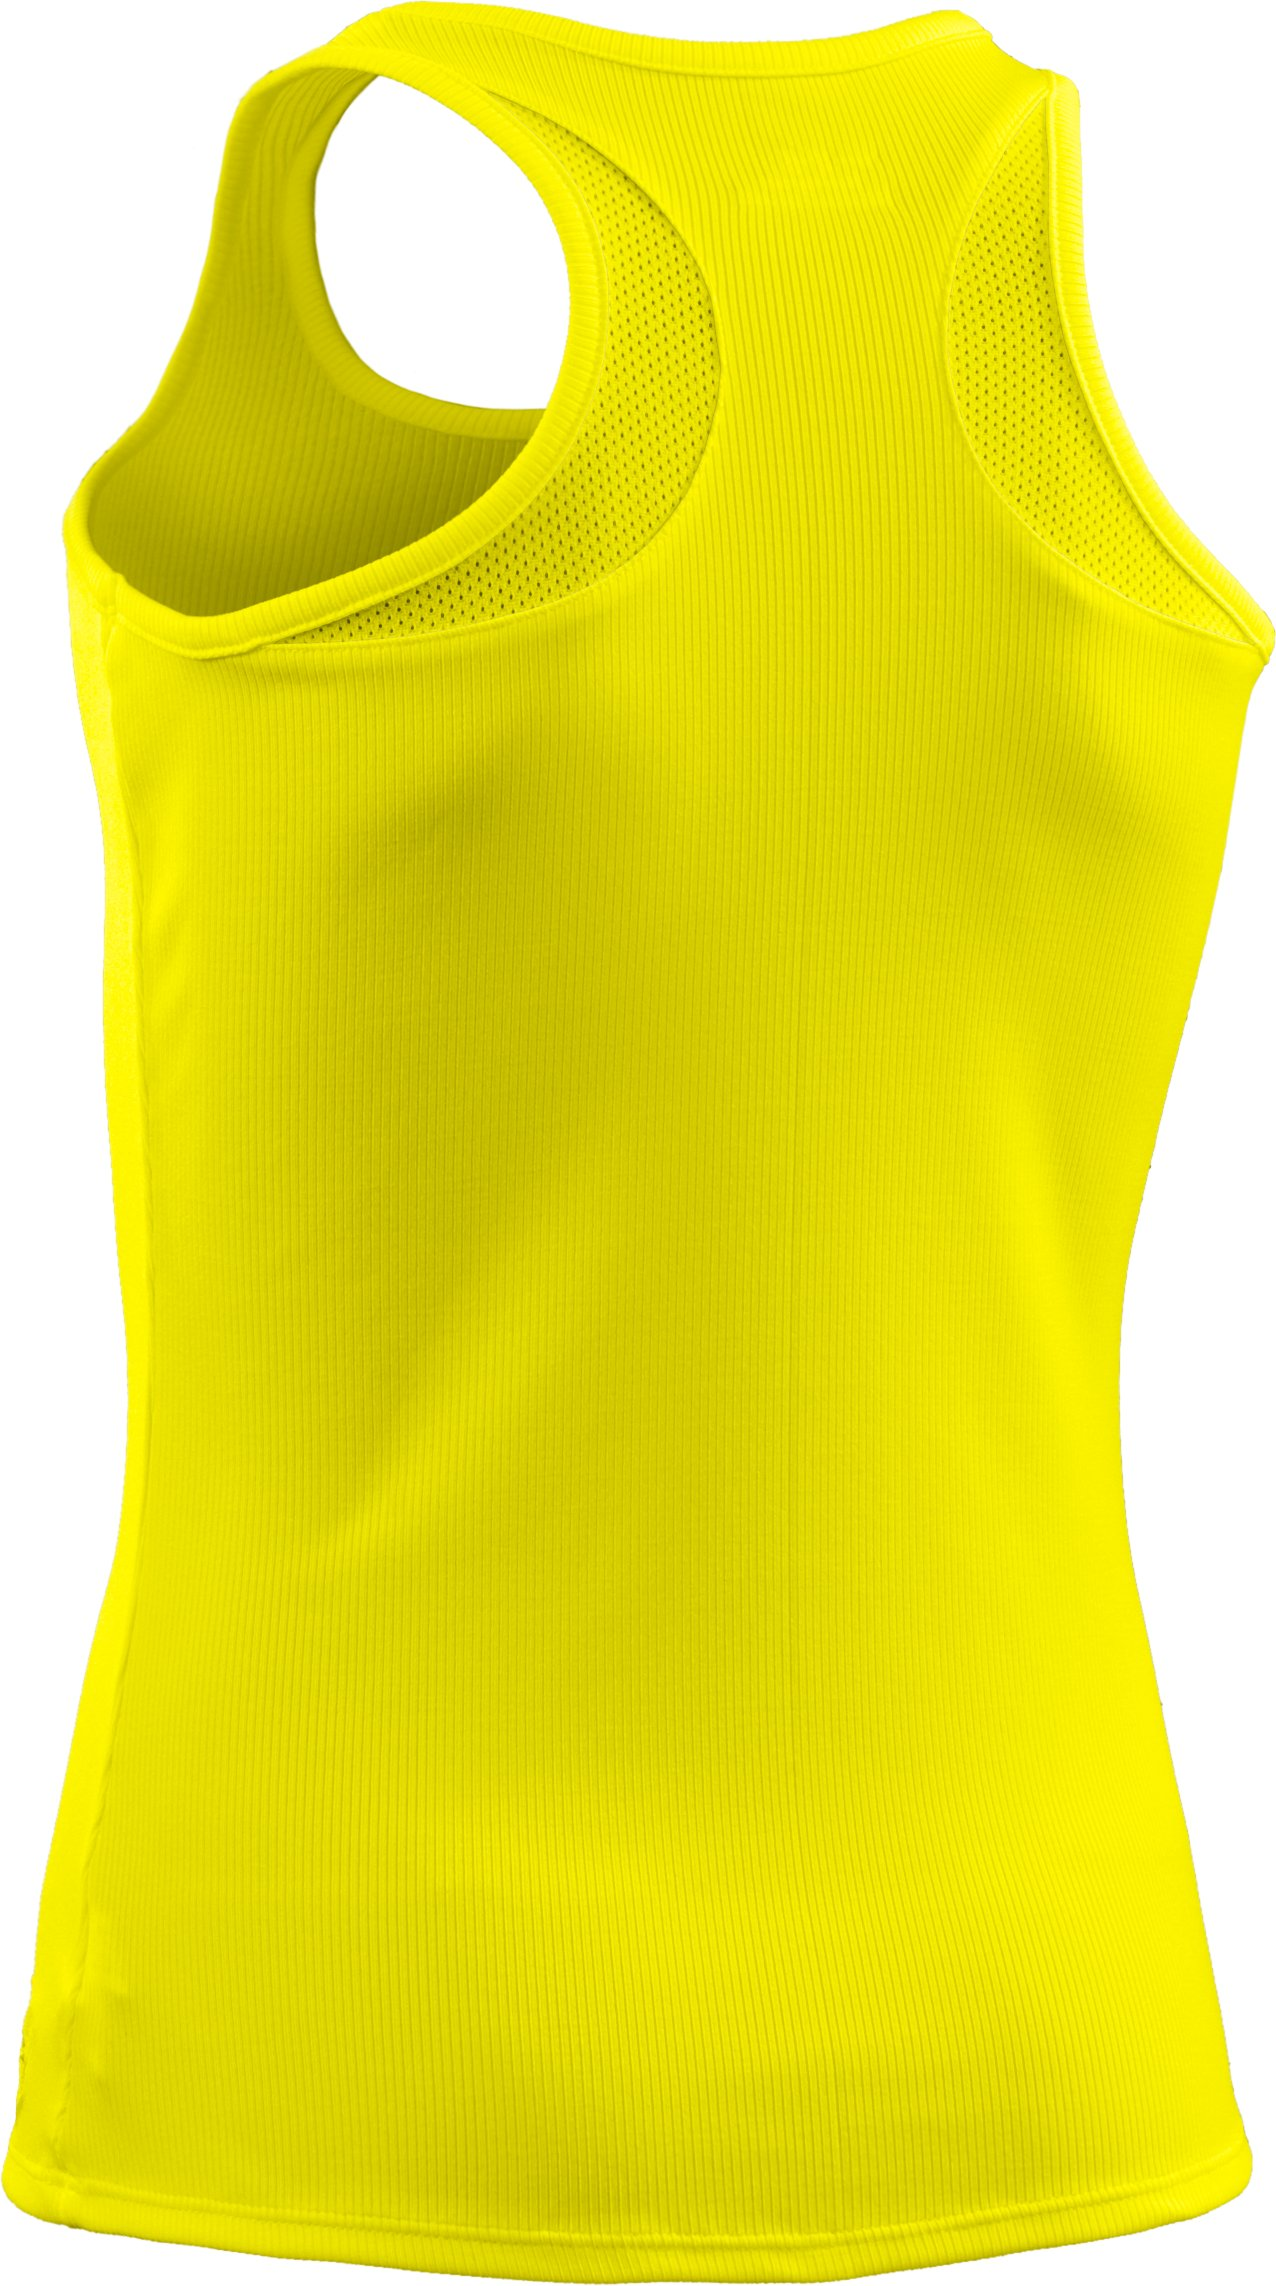 Girls' Victory Tank Top, Sunbleached,